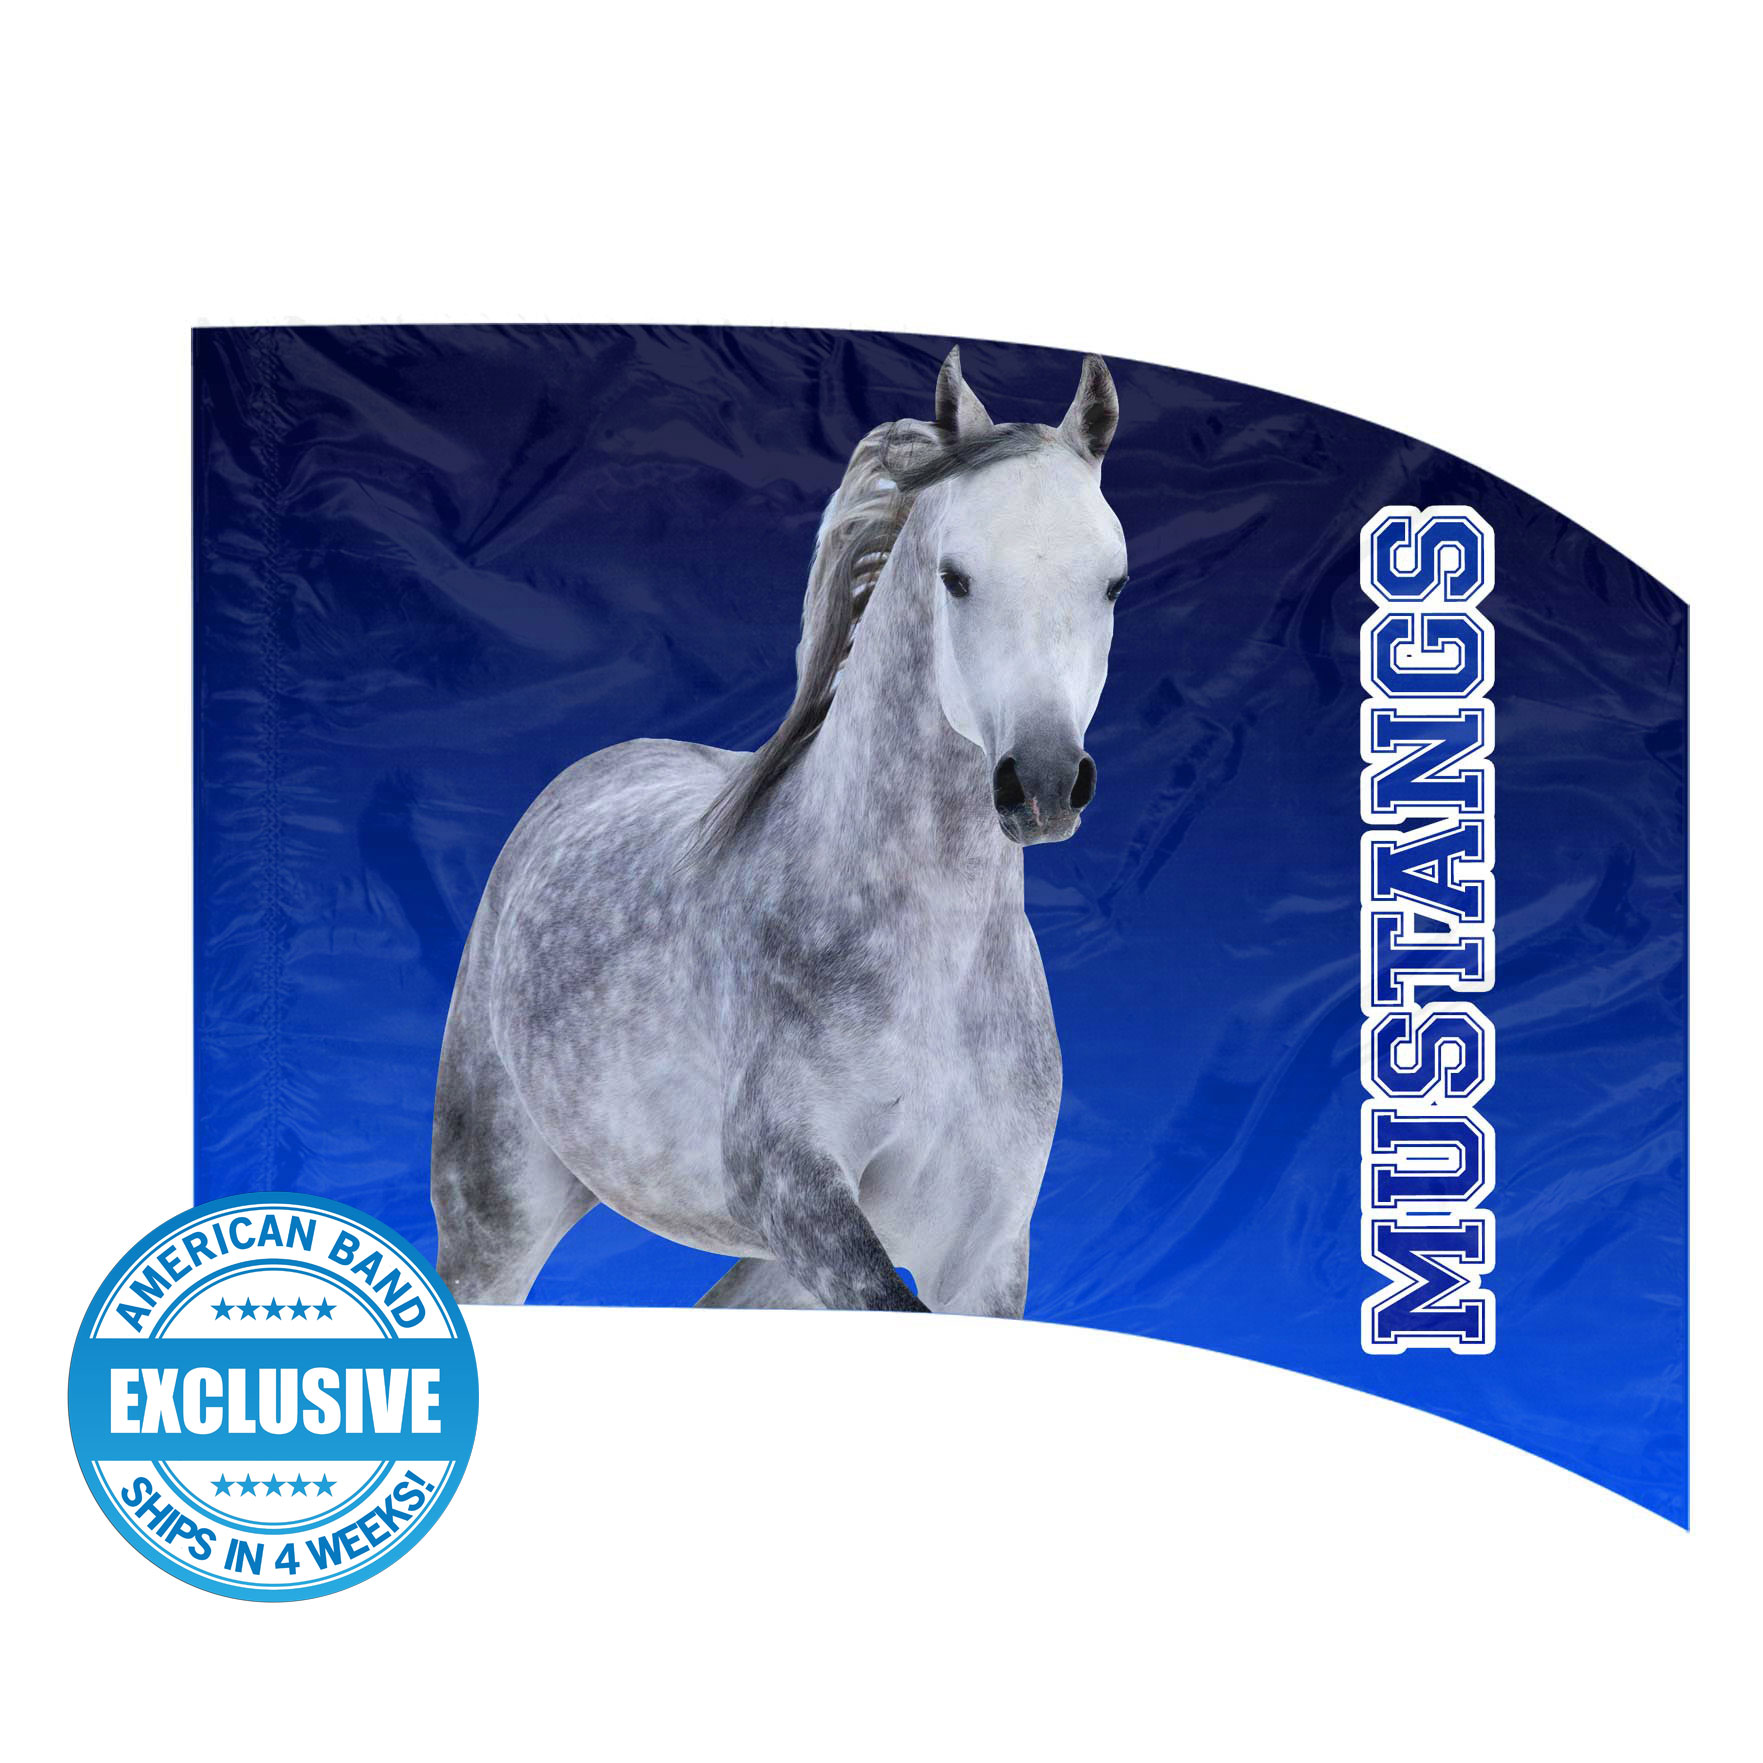 Made-to-Order Digital Mascot Flags - Mustang